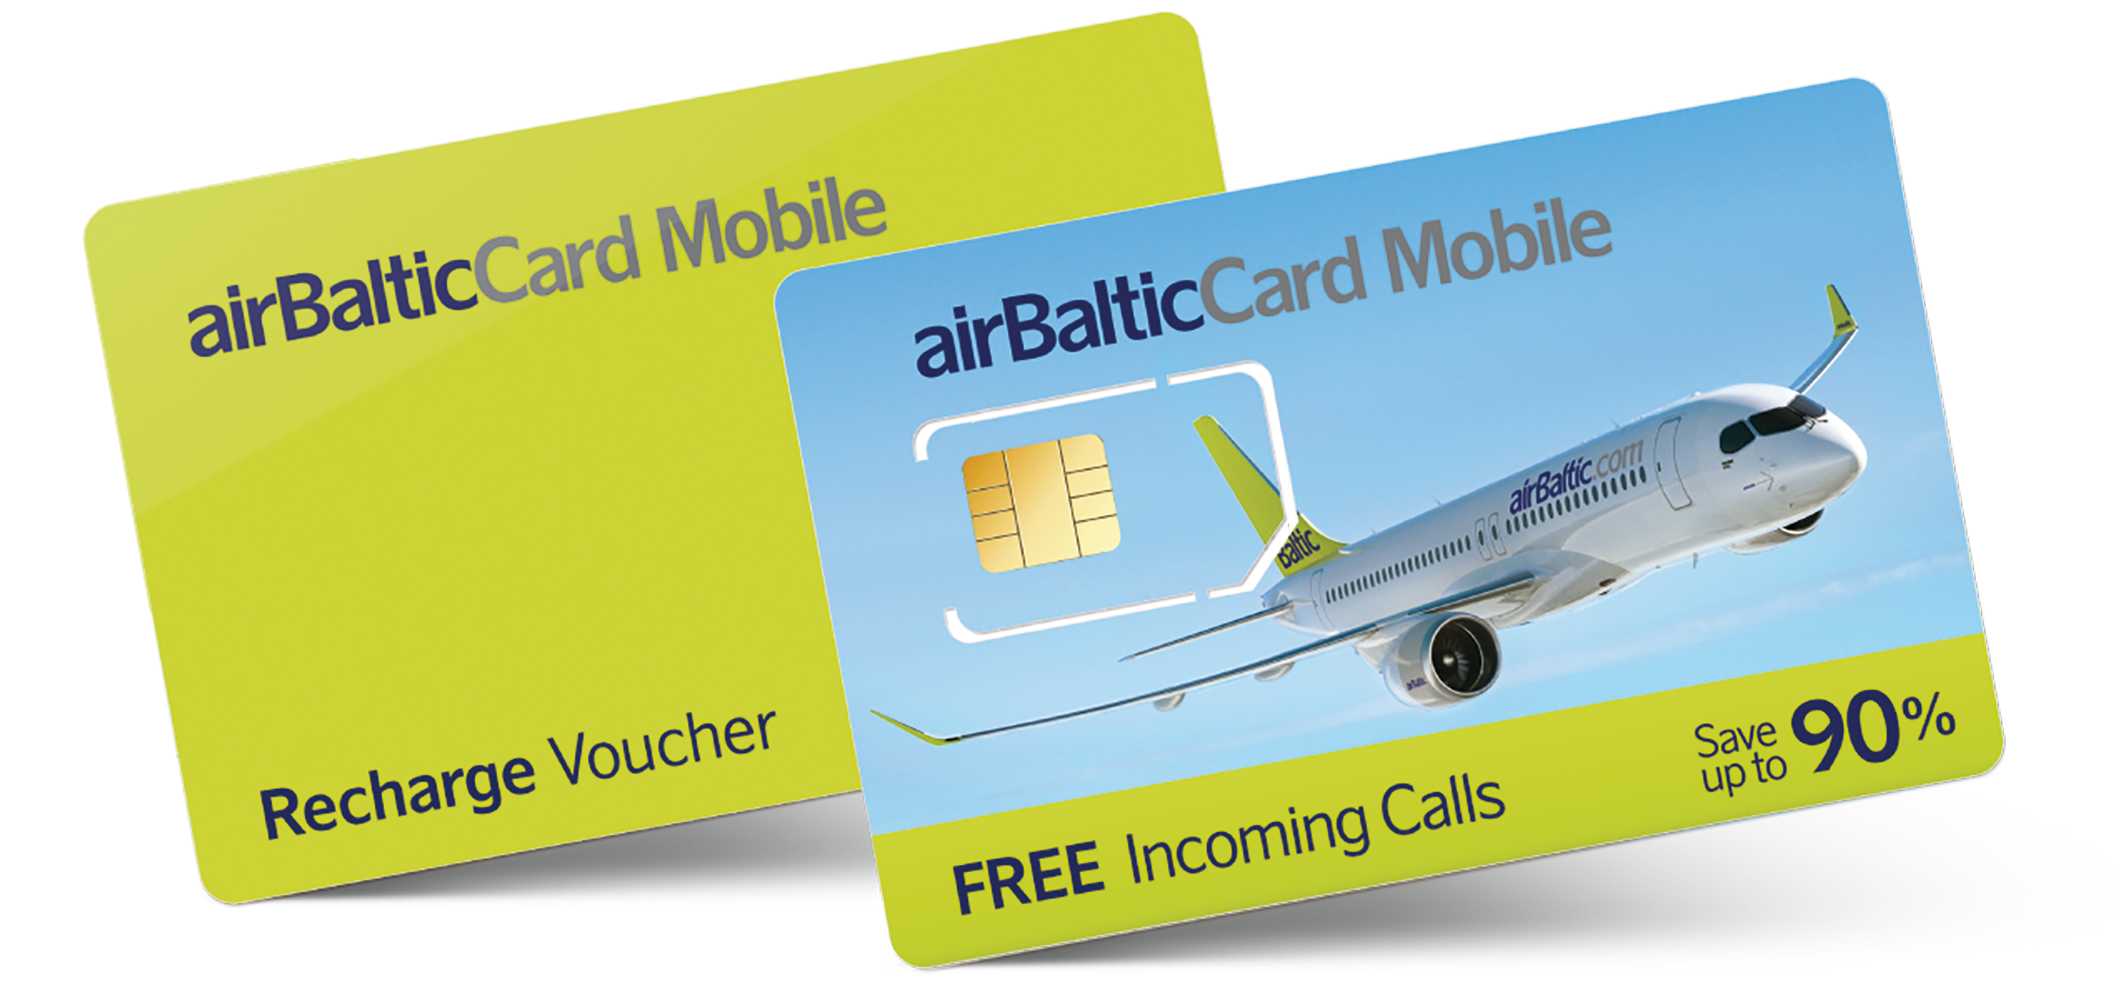 All Countries Prepaid Data Sim Card Wiki Fandom Powered By Wikia Et Jepang 8 Days The Airbalticcard Mobile International Of Baltic Airline Is Another Product With An Estonian Number 372 Its Based On Same